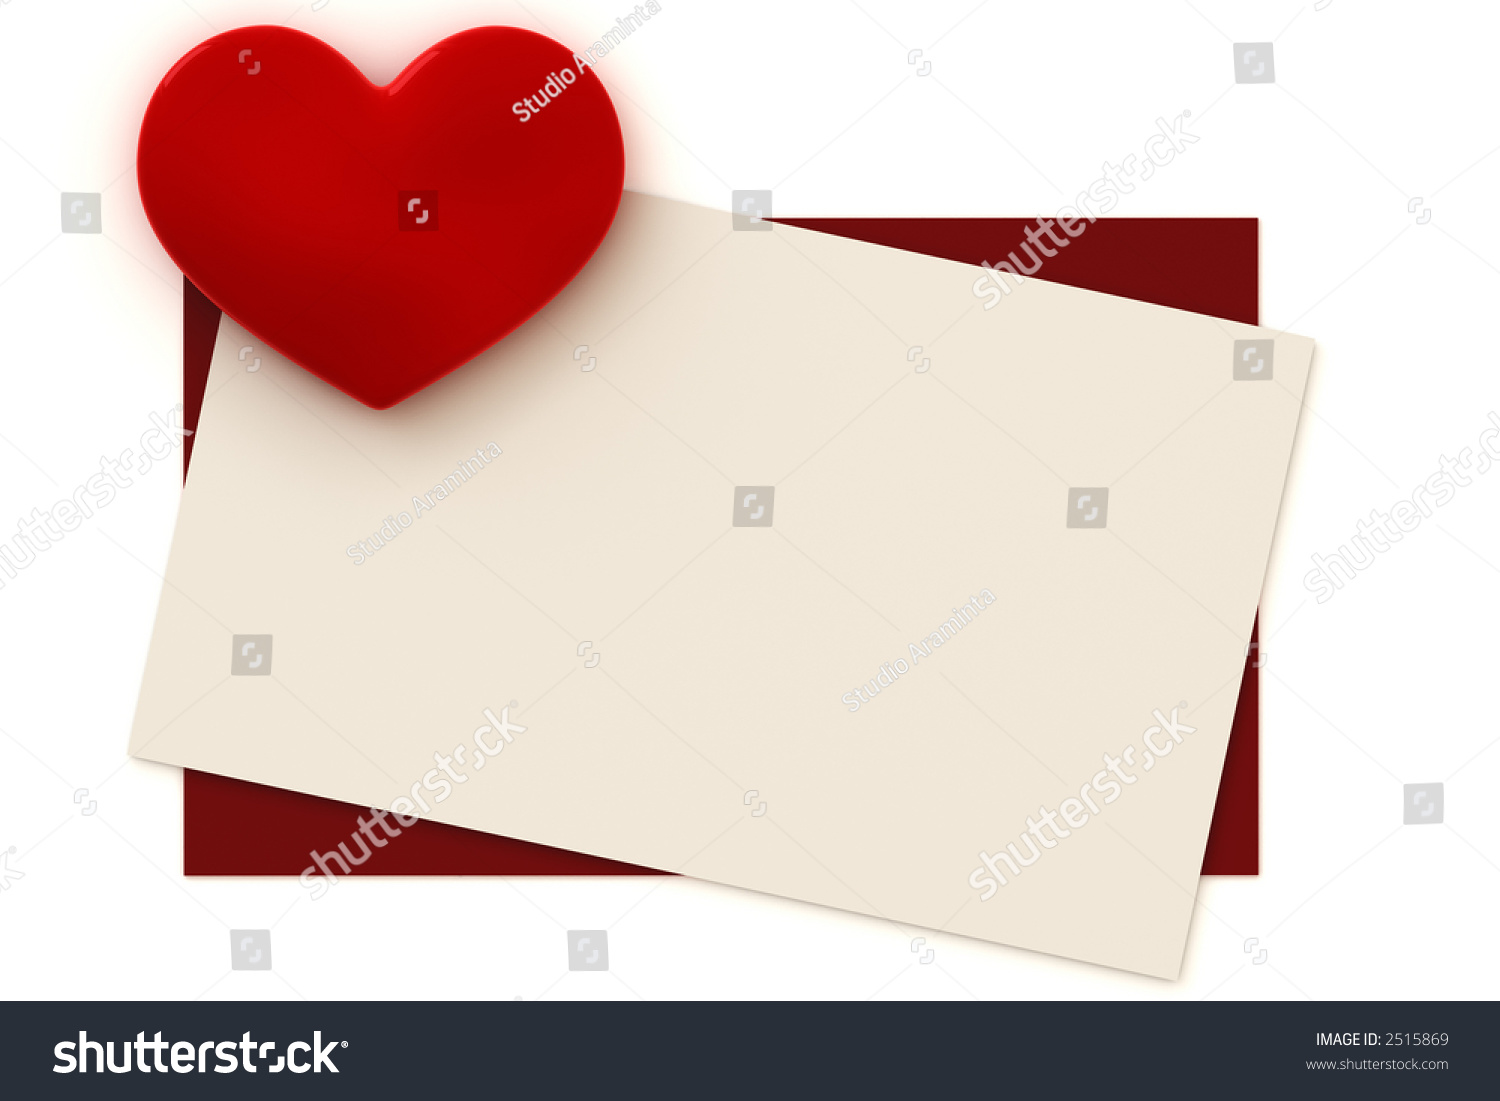 Blank Valentine Card With Copy Space To Write Your Own Text. This Is A